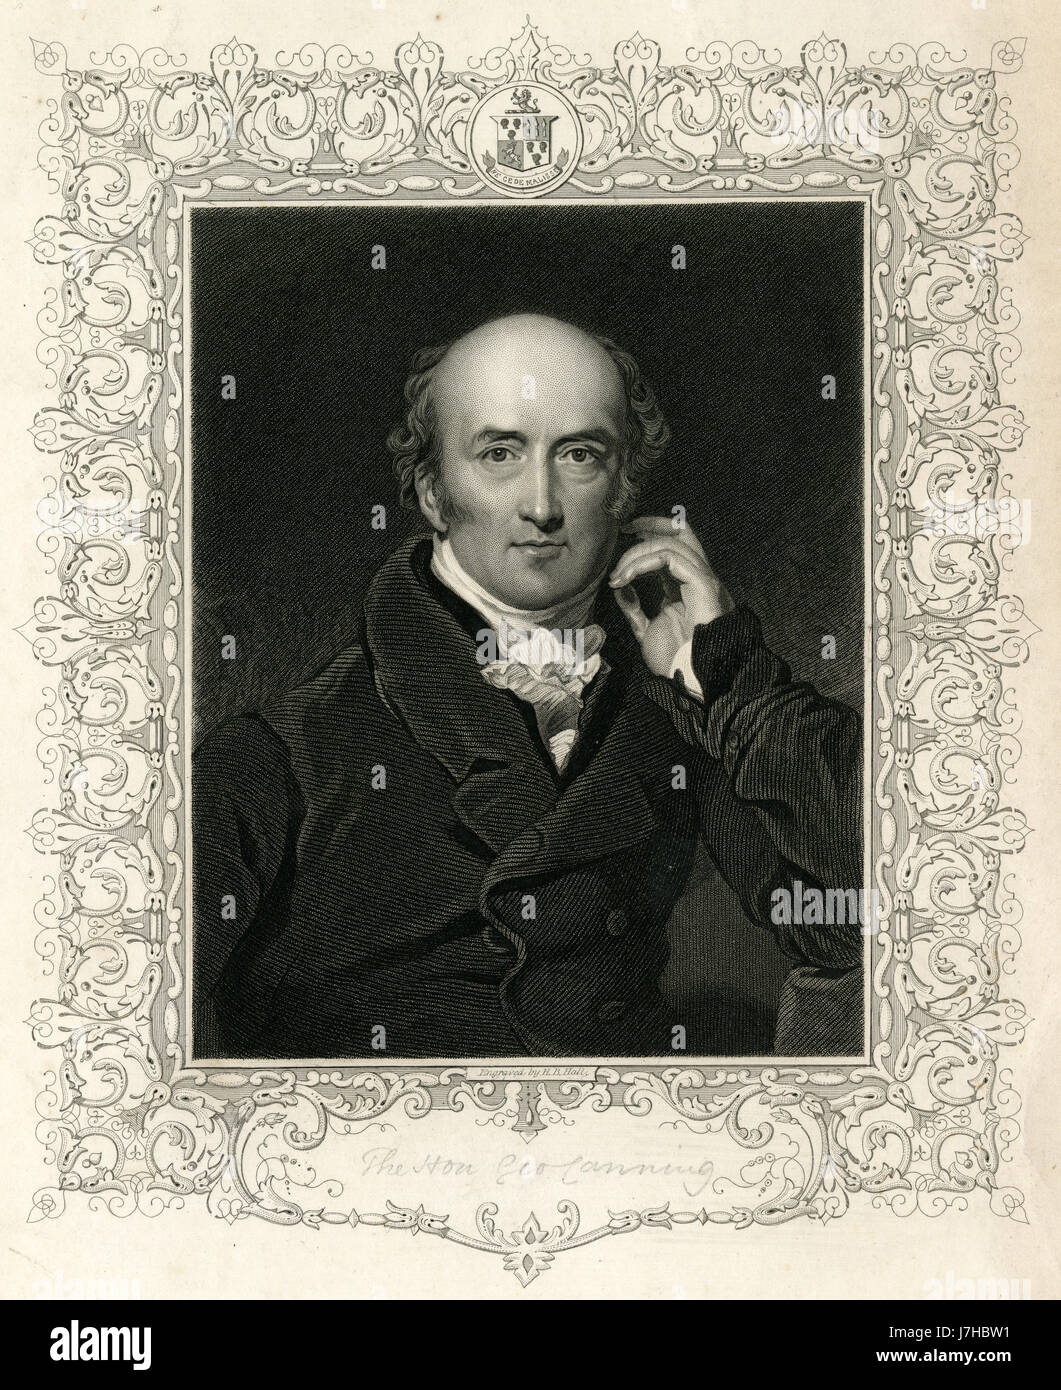 Antique 1836 engraving, George Canning. George Canning (1770-1827) was a British statesman and Tory politician who - Stock Image